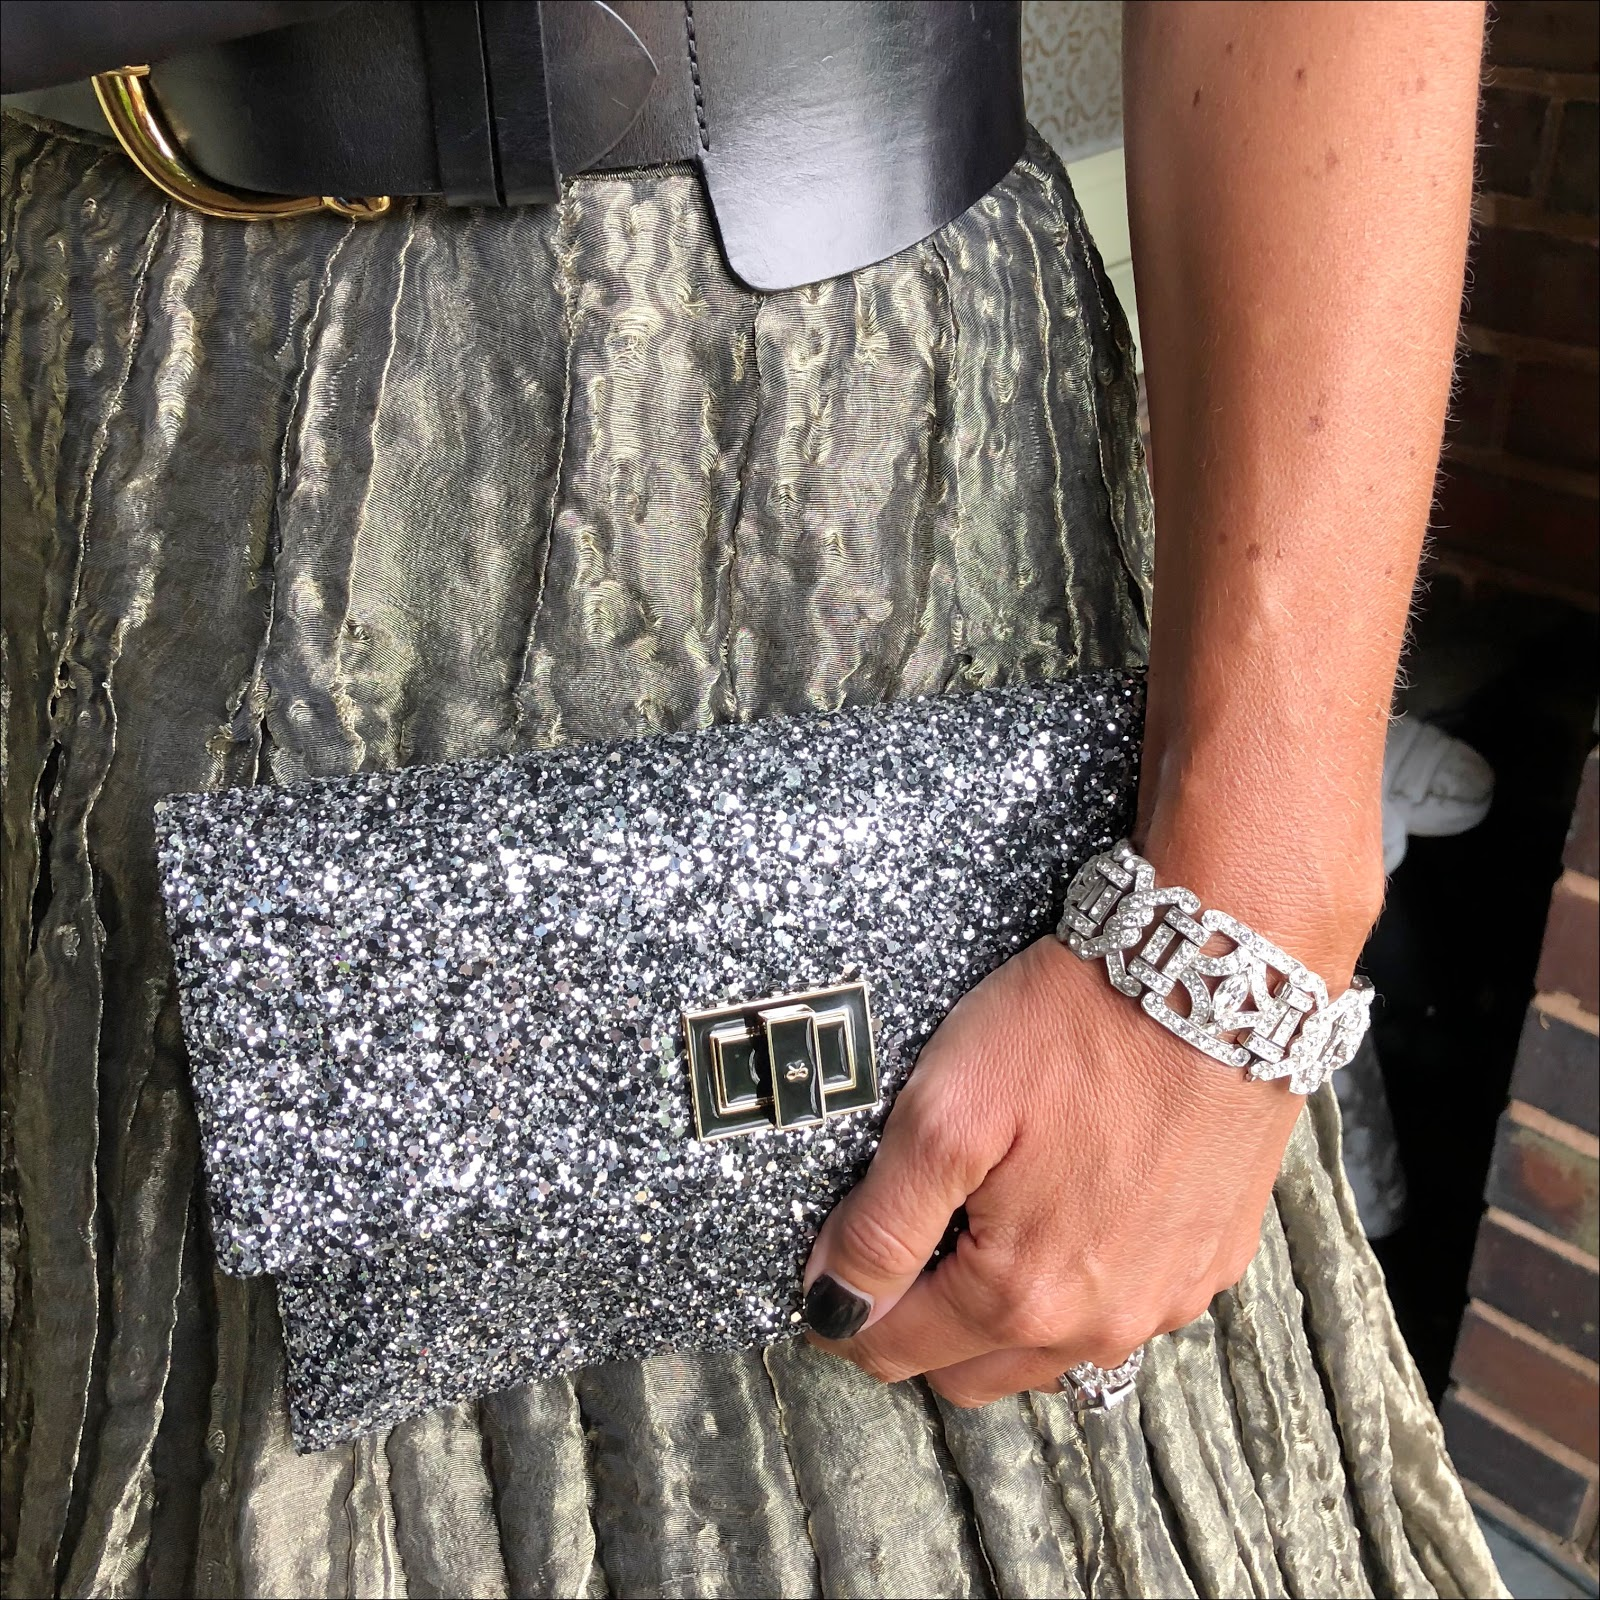 my midlife fashion, j crew halterneck top, and other stories waist buckle belt, anya hindmarch glitter clutch, bliss soles court shoes, giorgio armani couture maxi skirt